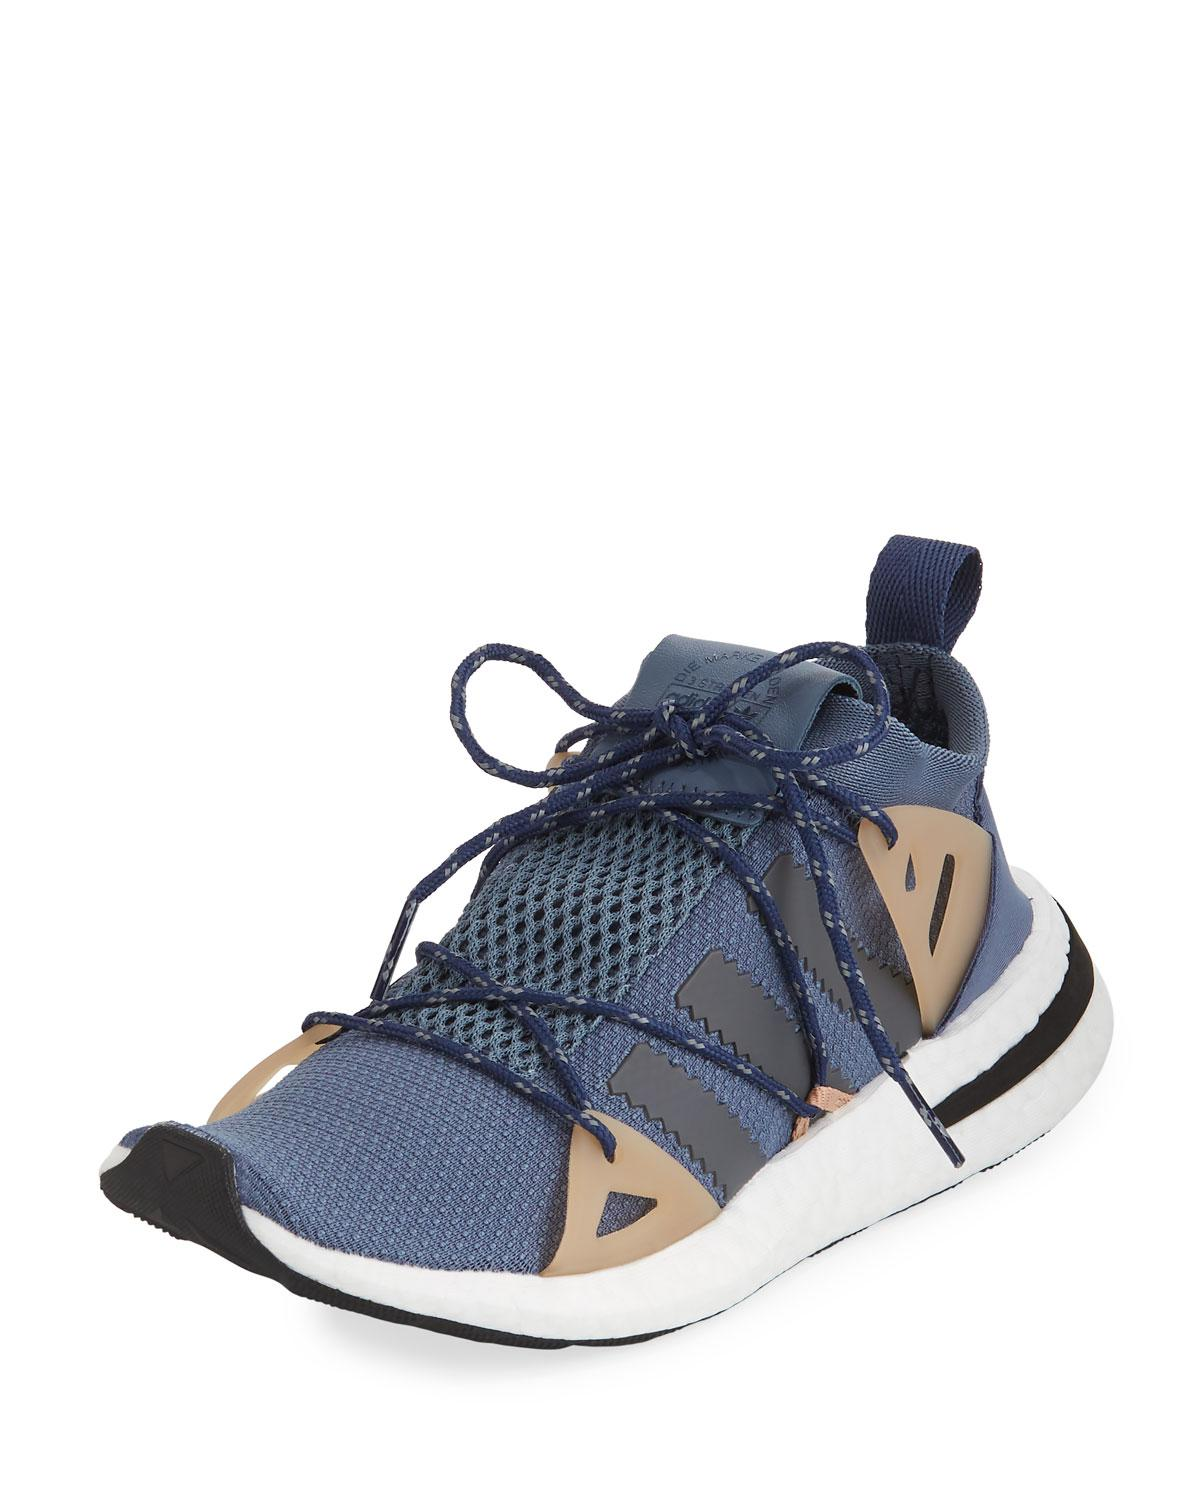 a9bd433464b9 Lyst - adidas Arkyn Colorblock Mesh Sneakers in Blue for Men